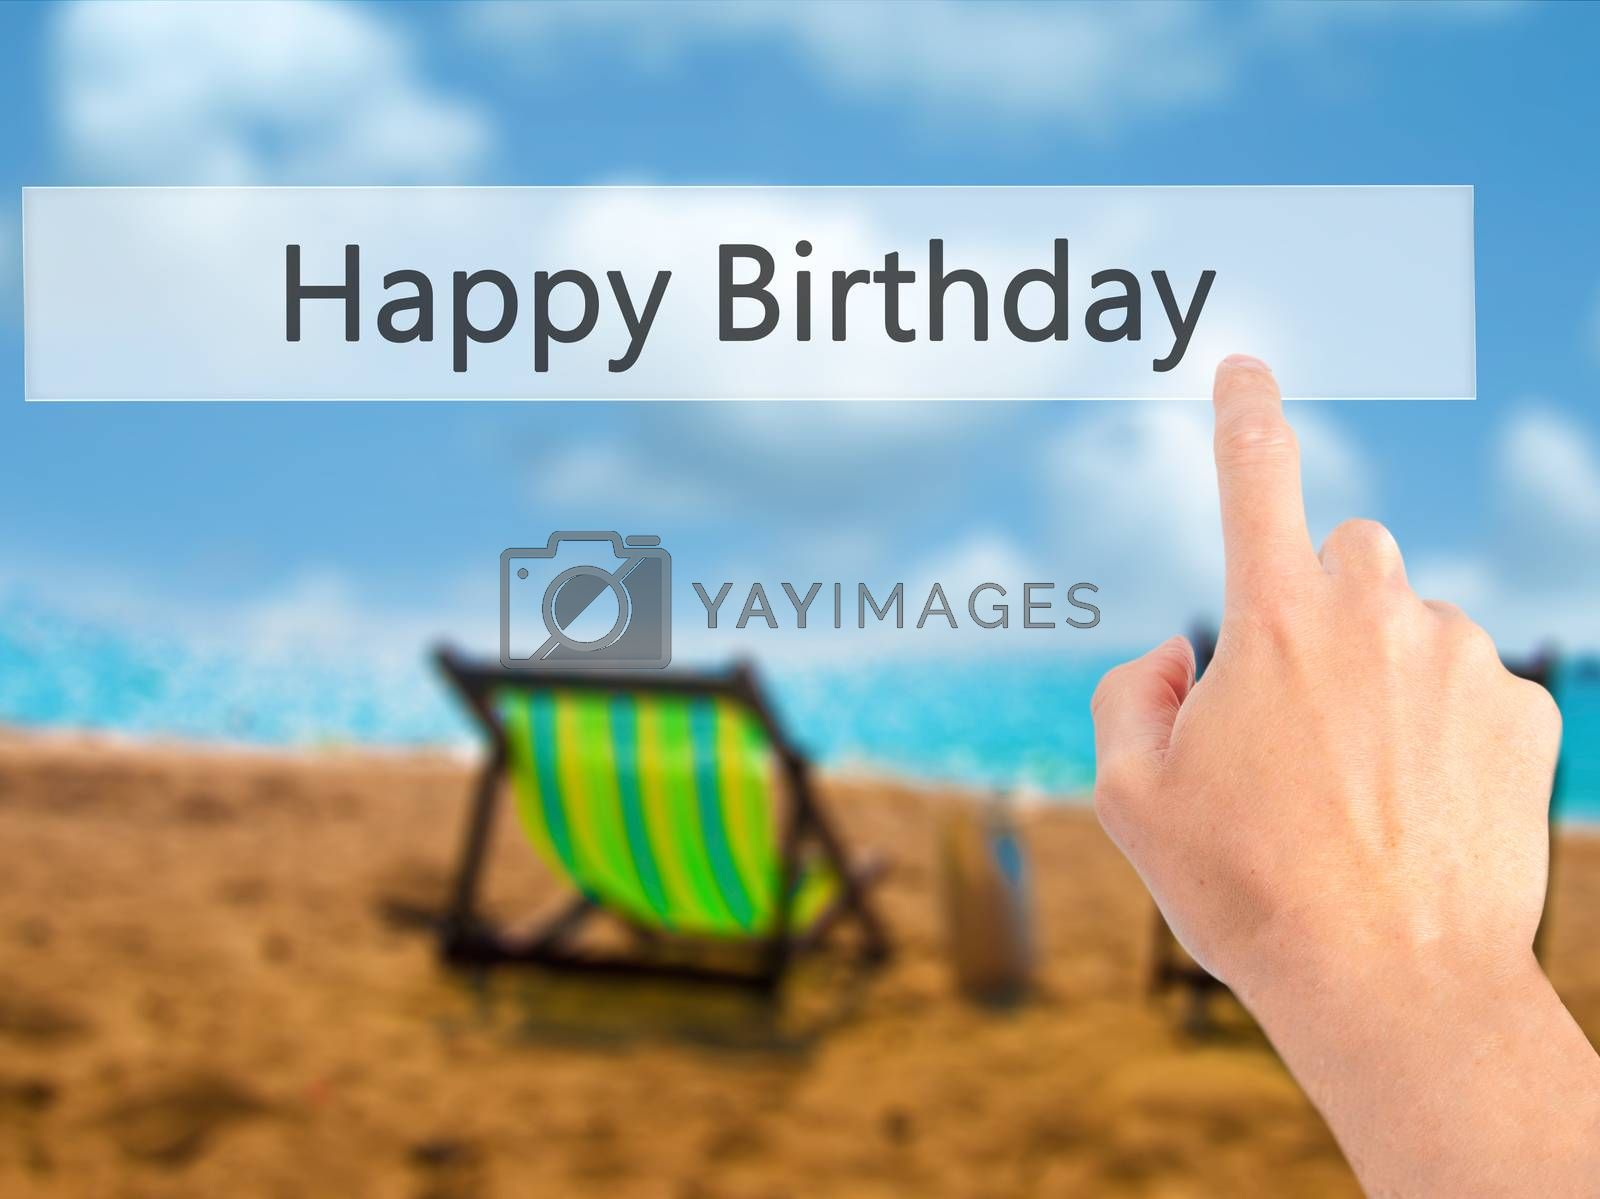 Happy Birthday - Hand pressing a button on blurred background co by jackald